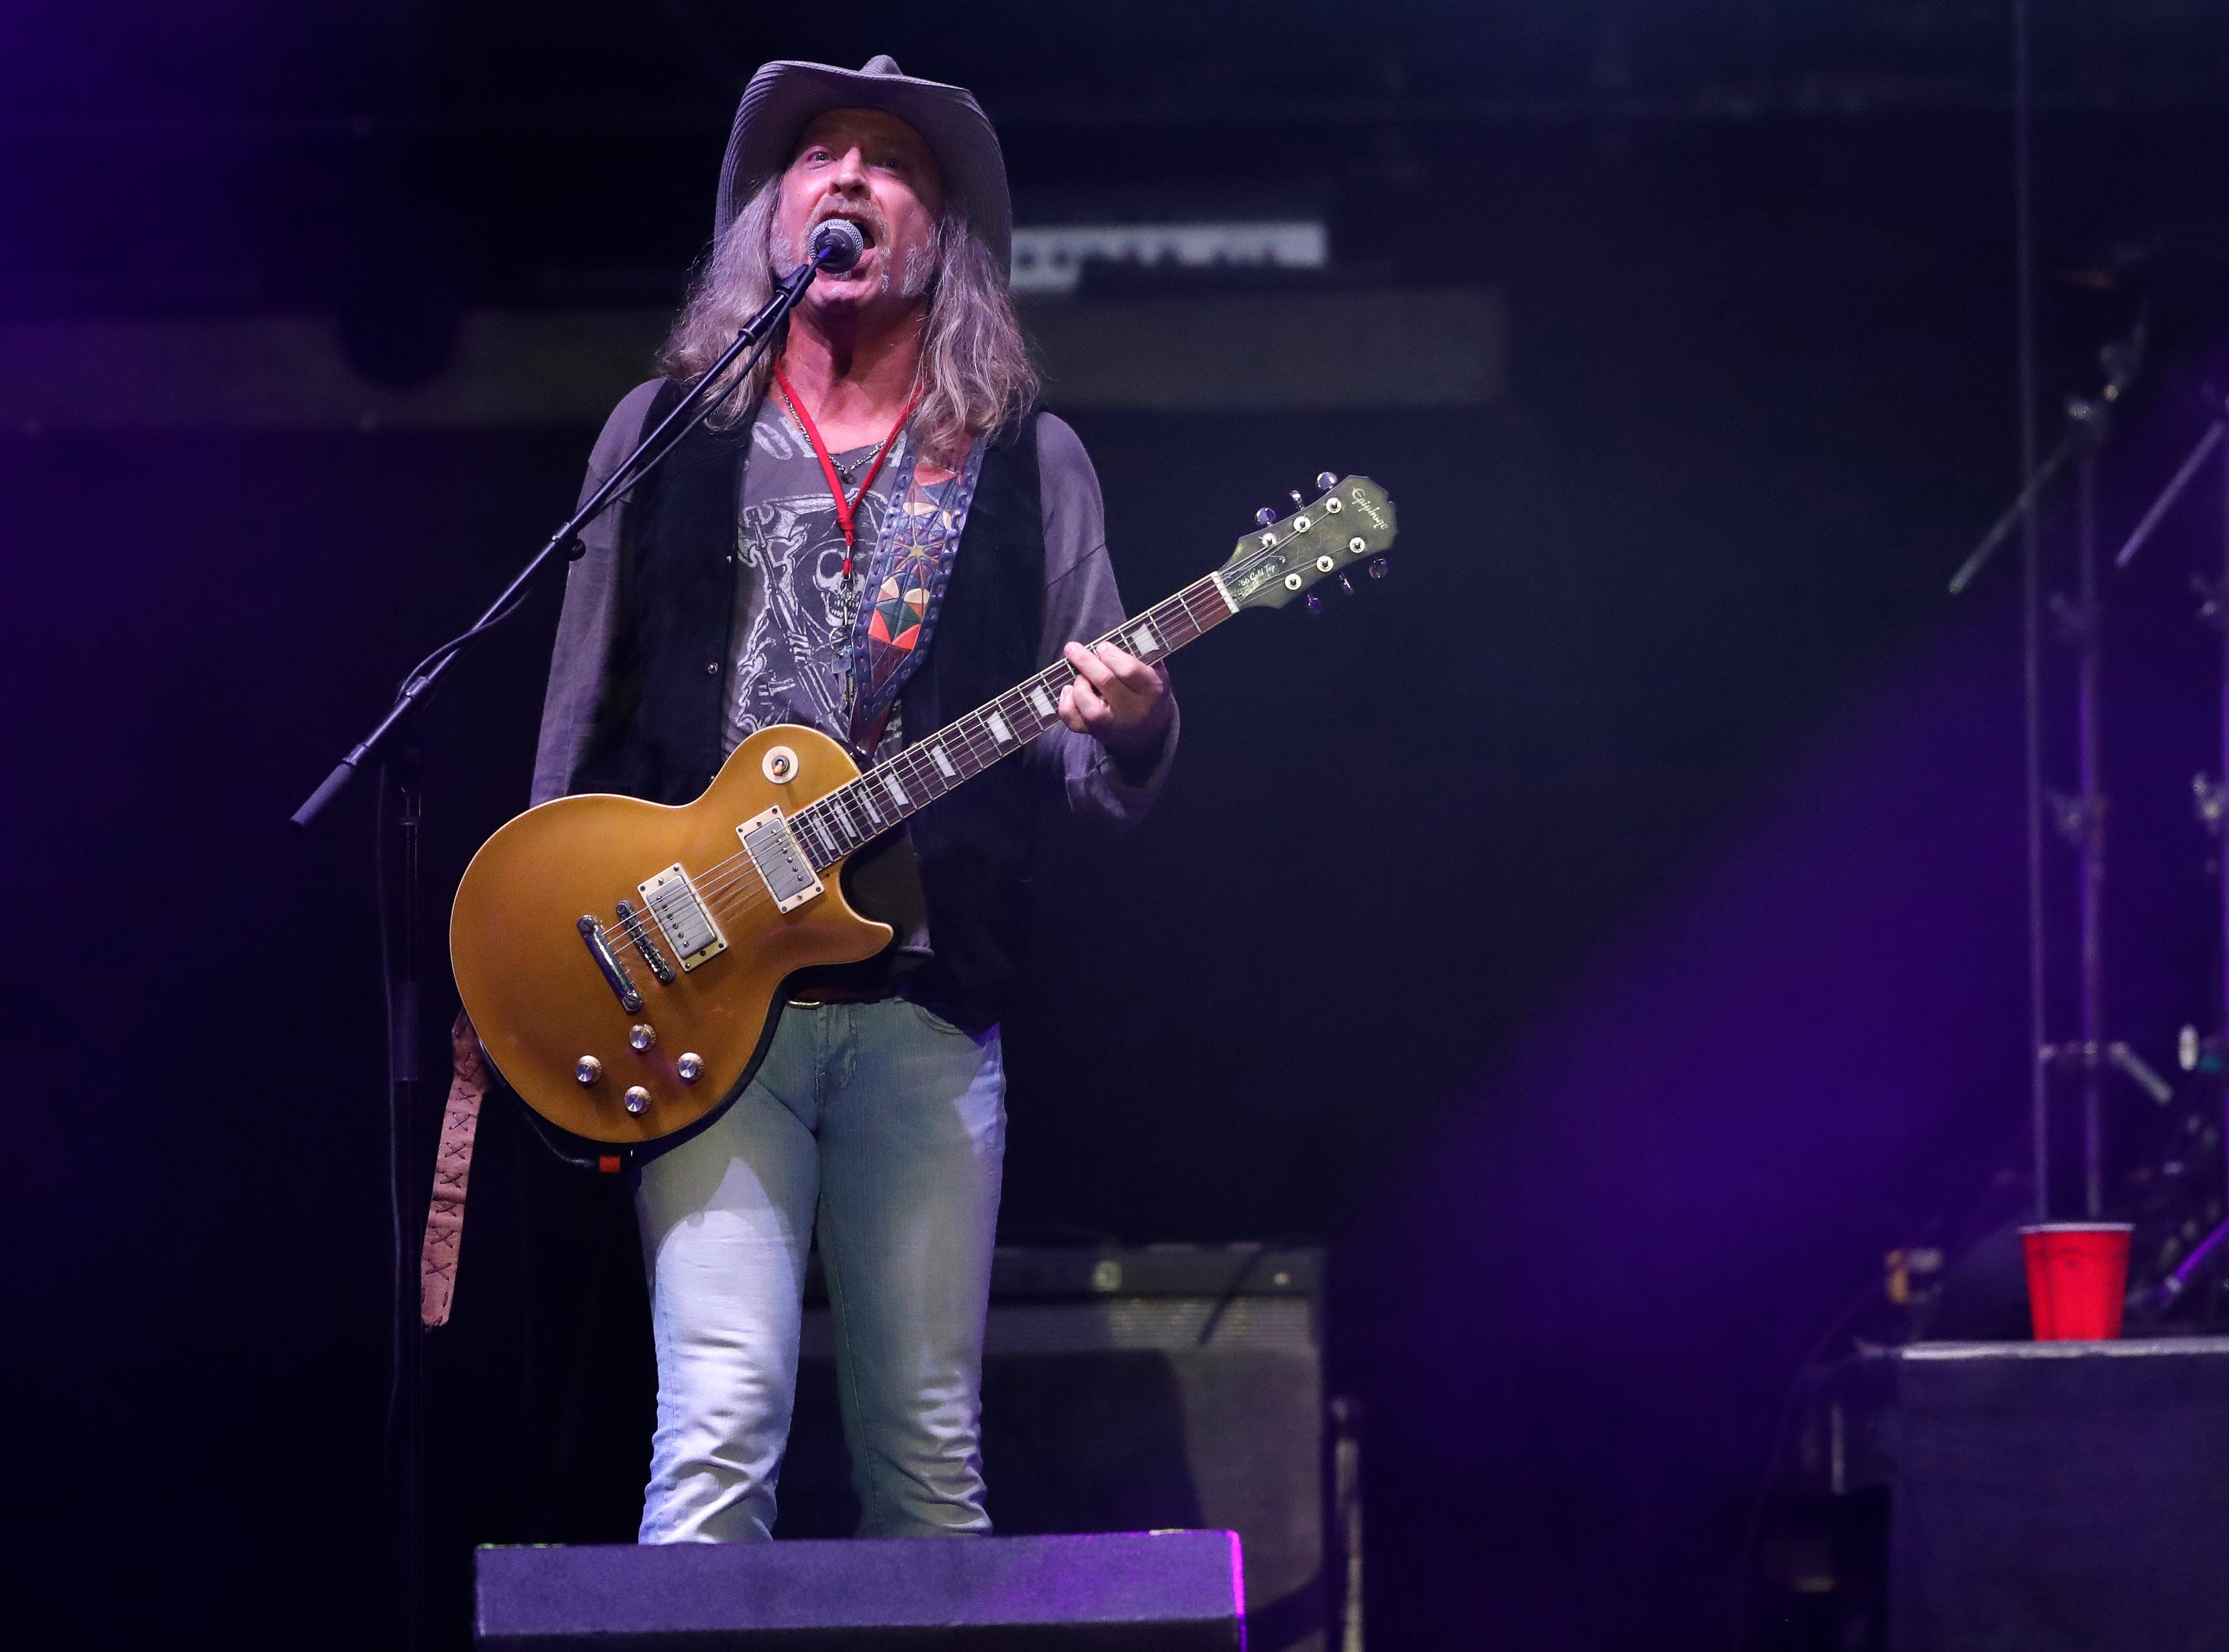 The Marshall Tucker Band performs ahead of  Lynyrd Skynyrd on Oct. 19, 2018 at the Resch Center in Ashwaubenon, Wis.